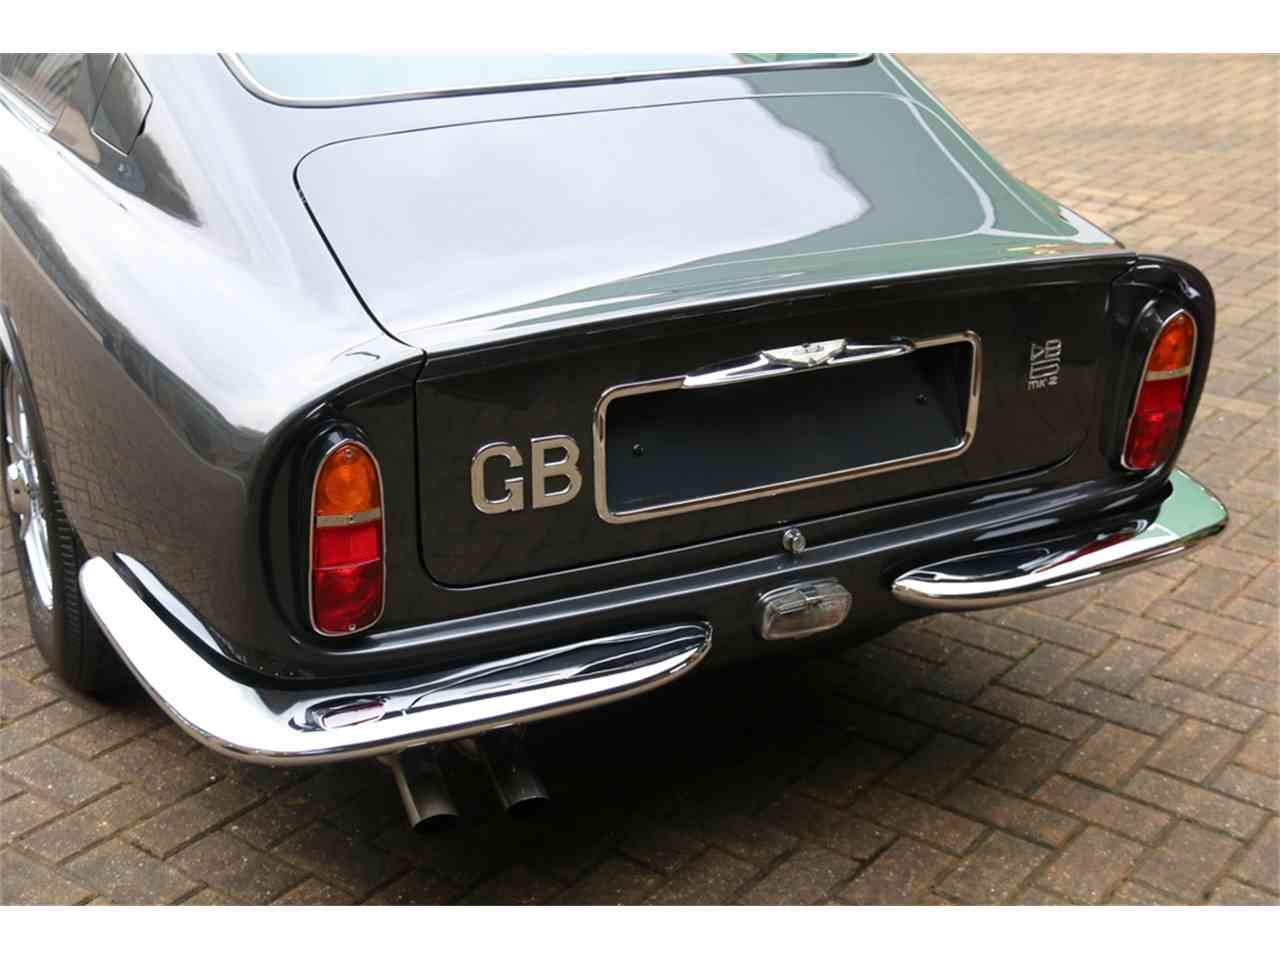 Large Picture of Classic '70 Aston Martin DB6 Mark II located in  - LRY5